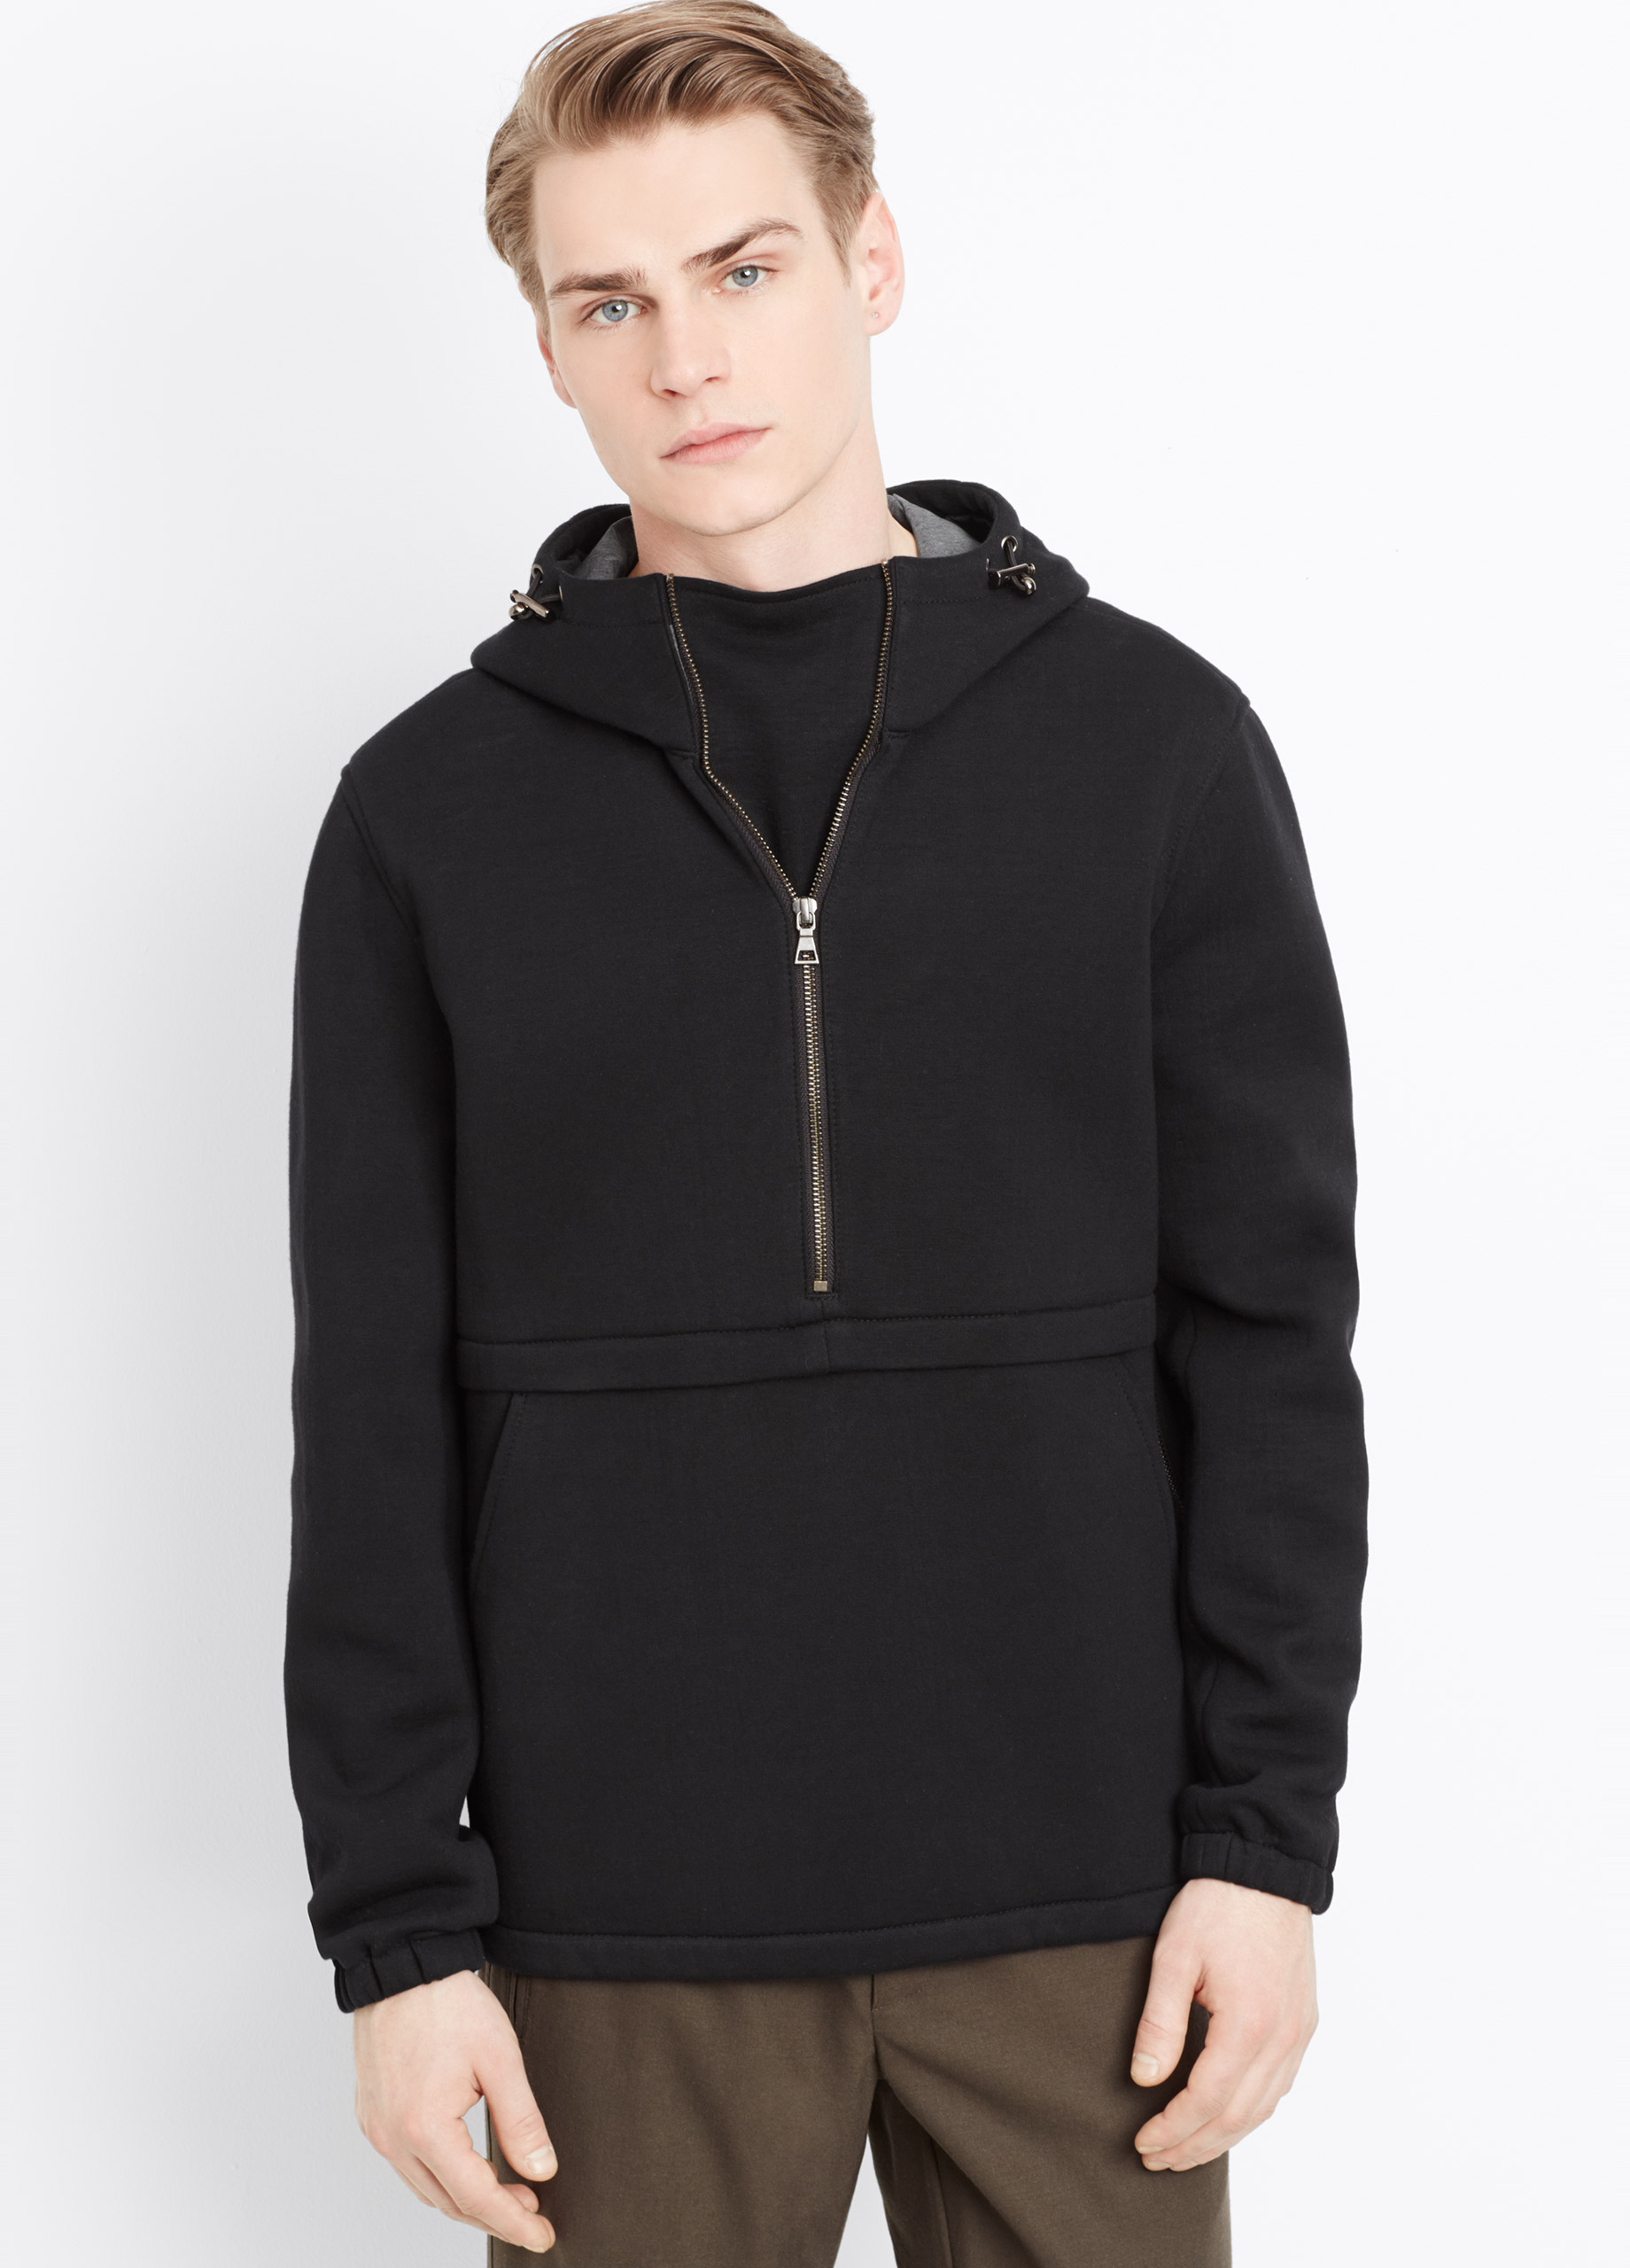 vince neoprene pullover half zip hoodie in black for men. Black Bedroom Furniture Sets. Home Design Ideas